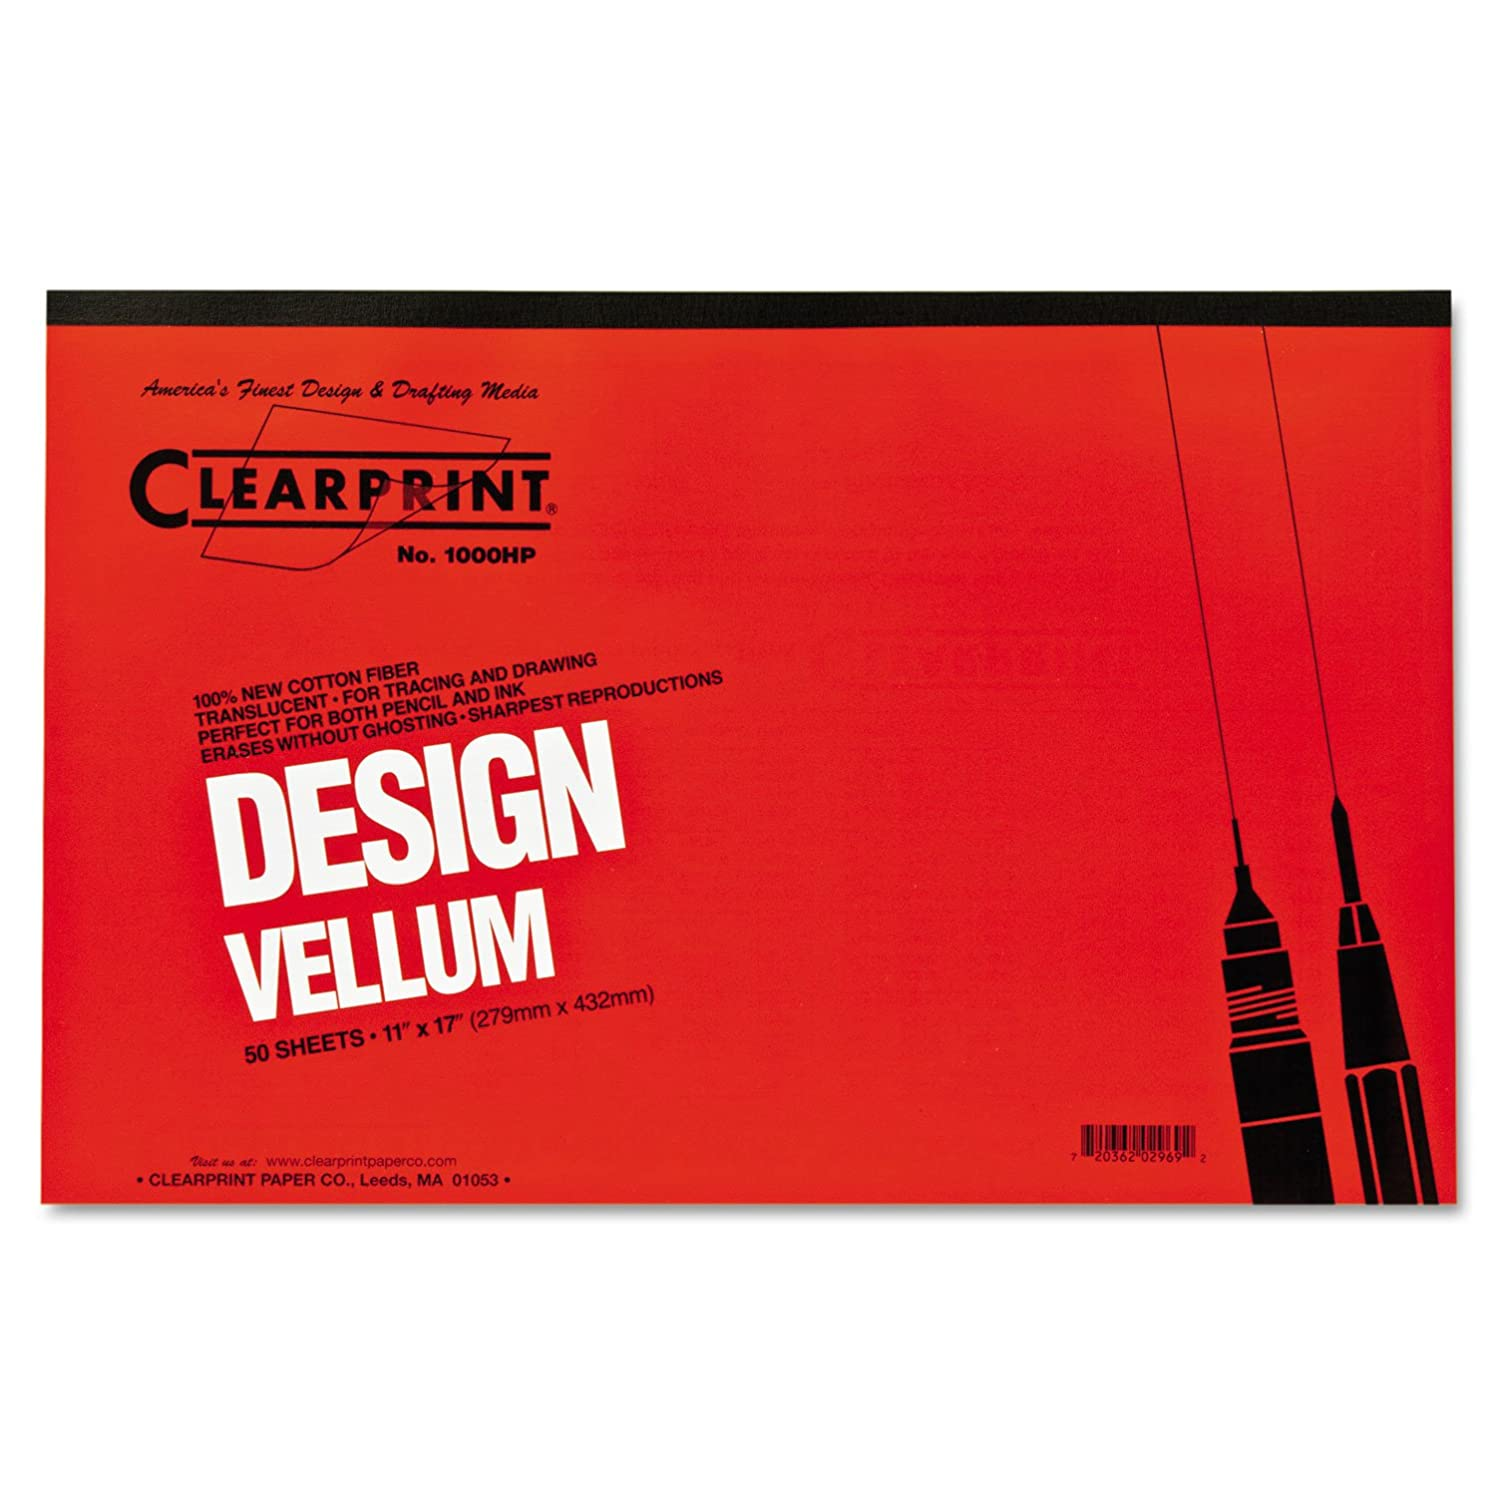 Clearprint CHA10001416 Not Not Available 10001416 Design Vellum Paper, 16lb, White, 11 x 17, 50Sheets per Pad